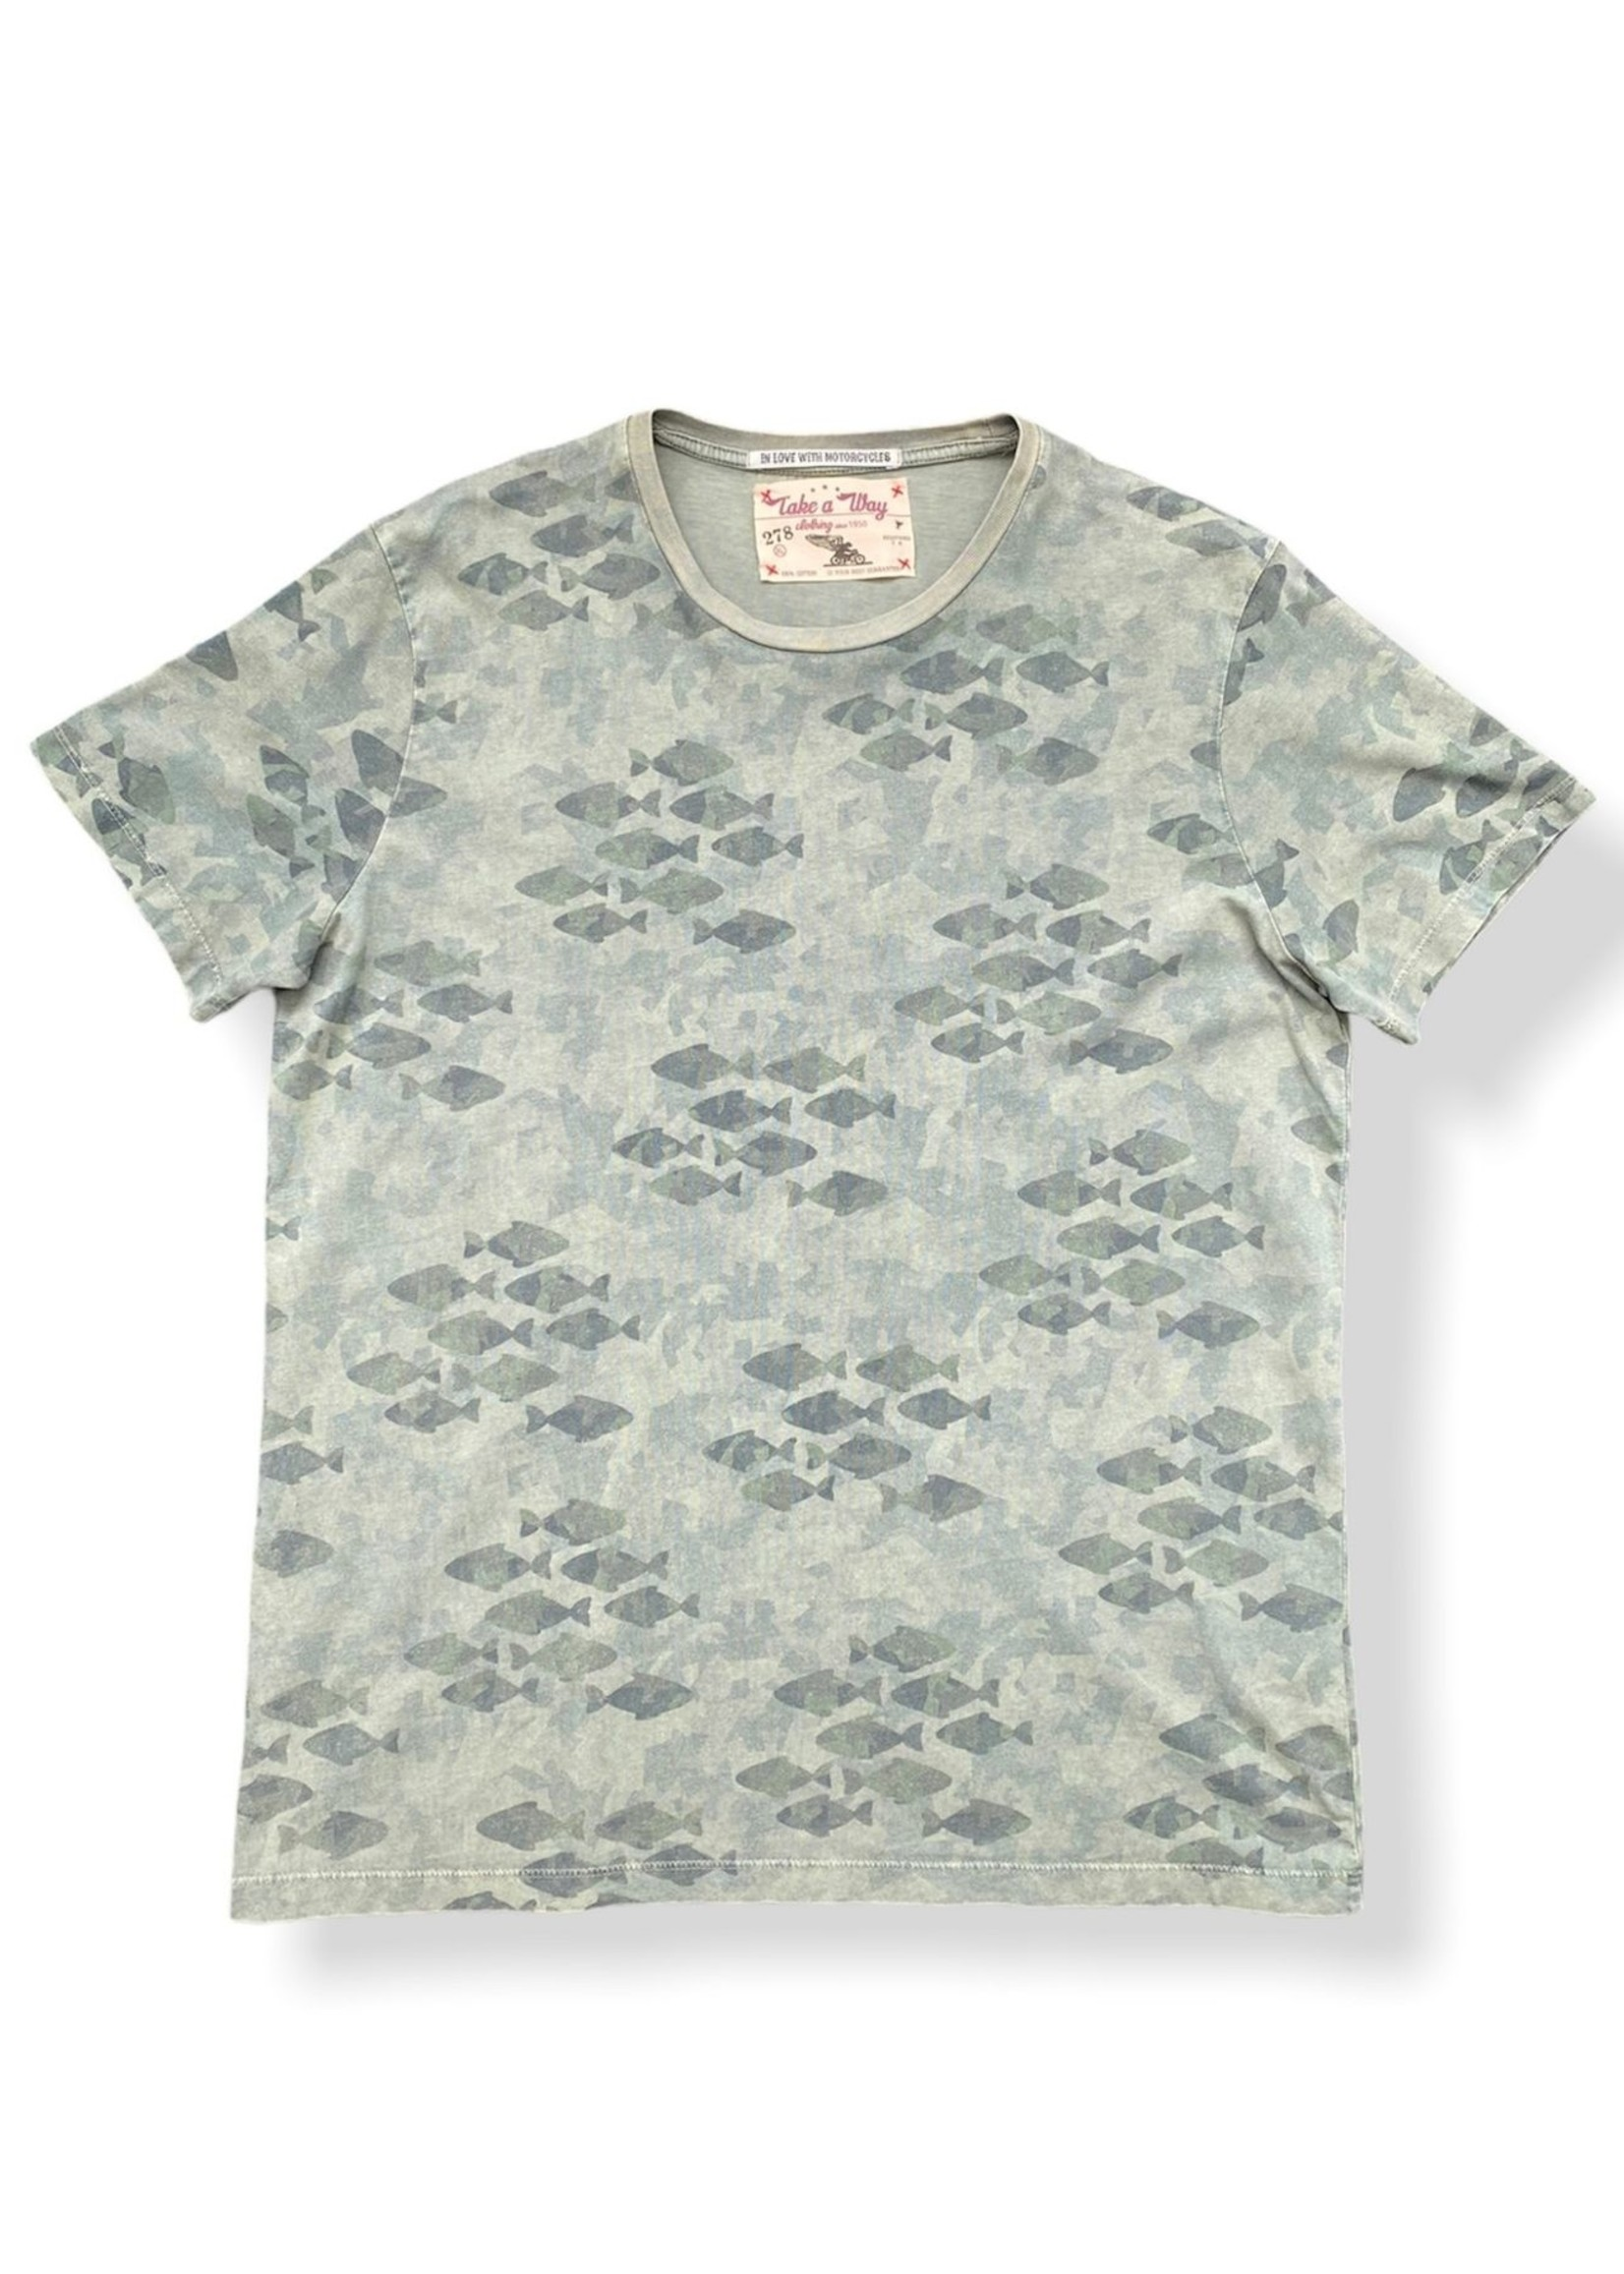 Take A Way T-Shirt Military Fishes | Vert Militaire | Take a Way